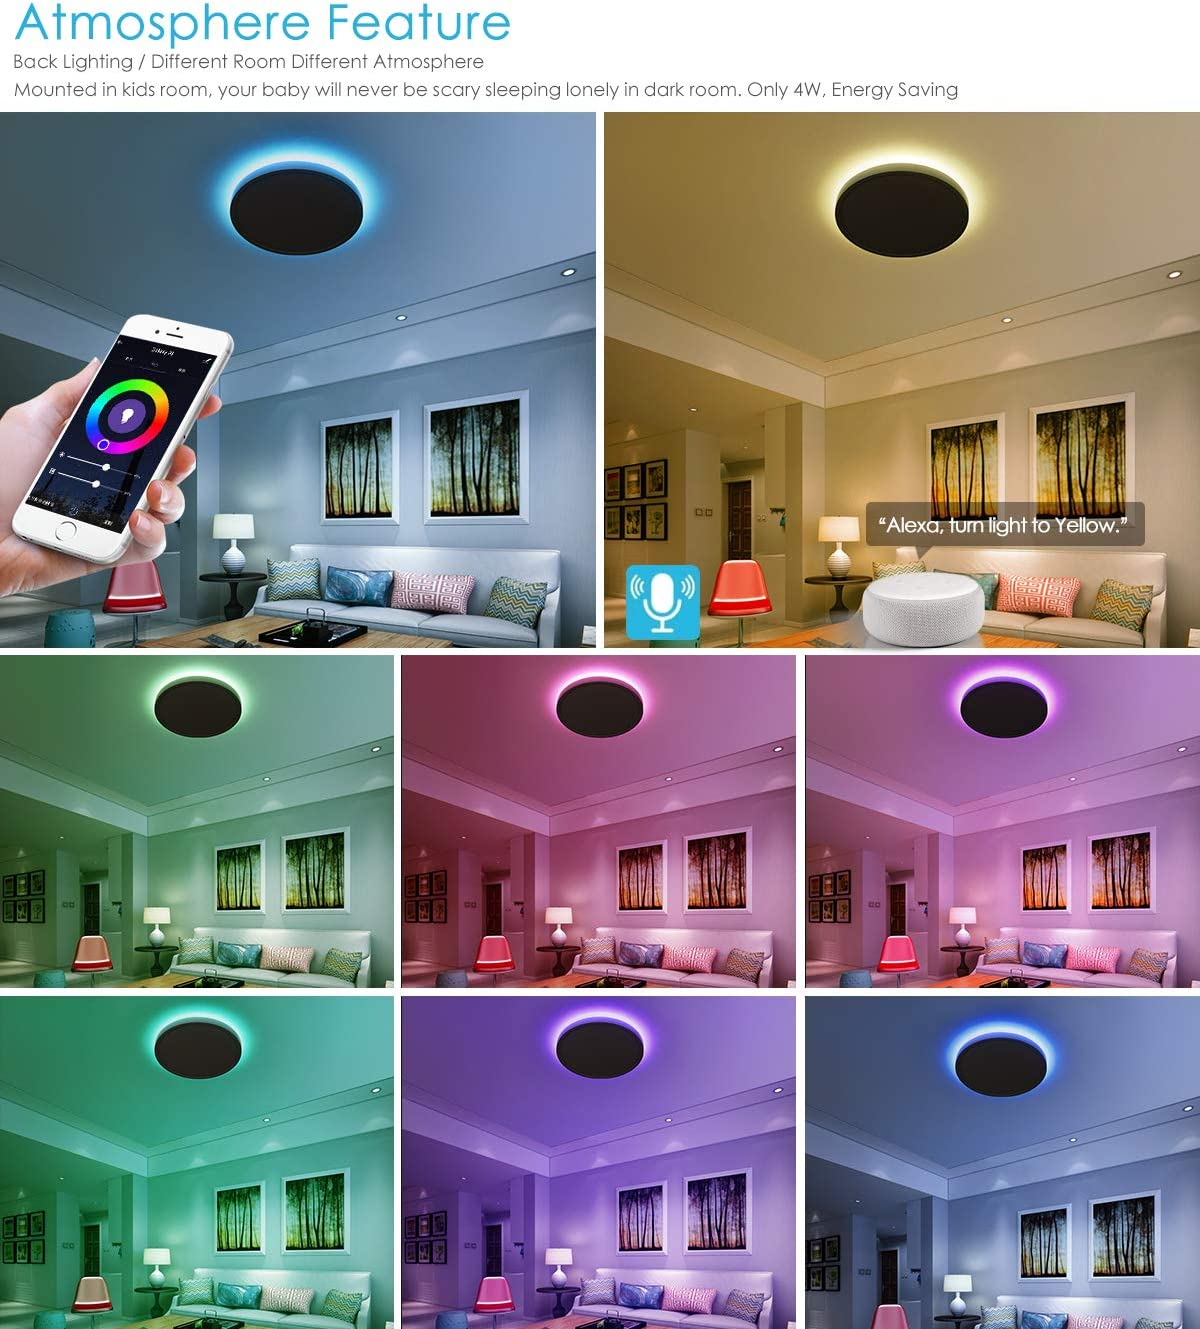 Easy Installation Compatible with Alexa 12 Inch, 24W Dimmable 12 Inch Low Profile LED Surface Mount Light Fixture for Bedroom Living Room TALOYA Smart Ceiling Light LED Flush Mount WiFi